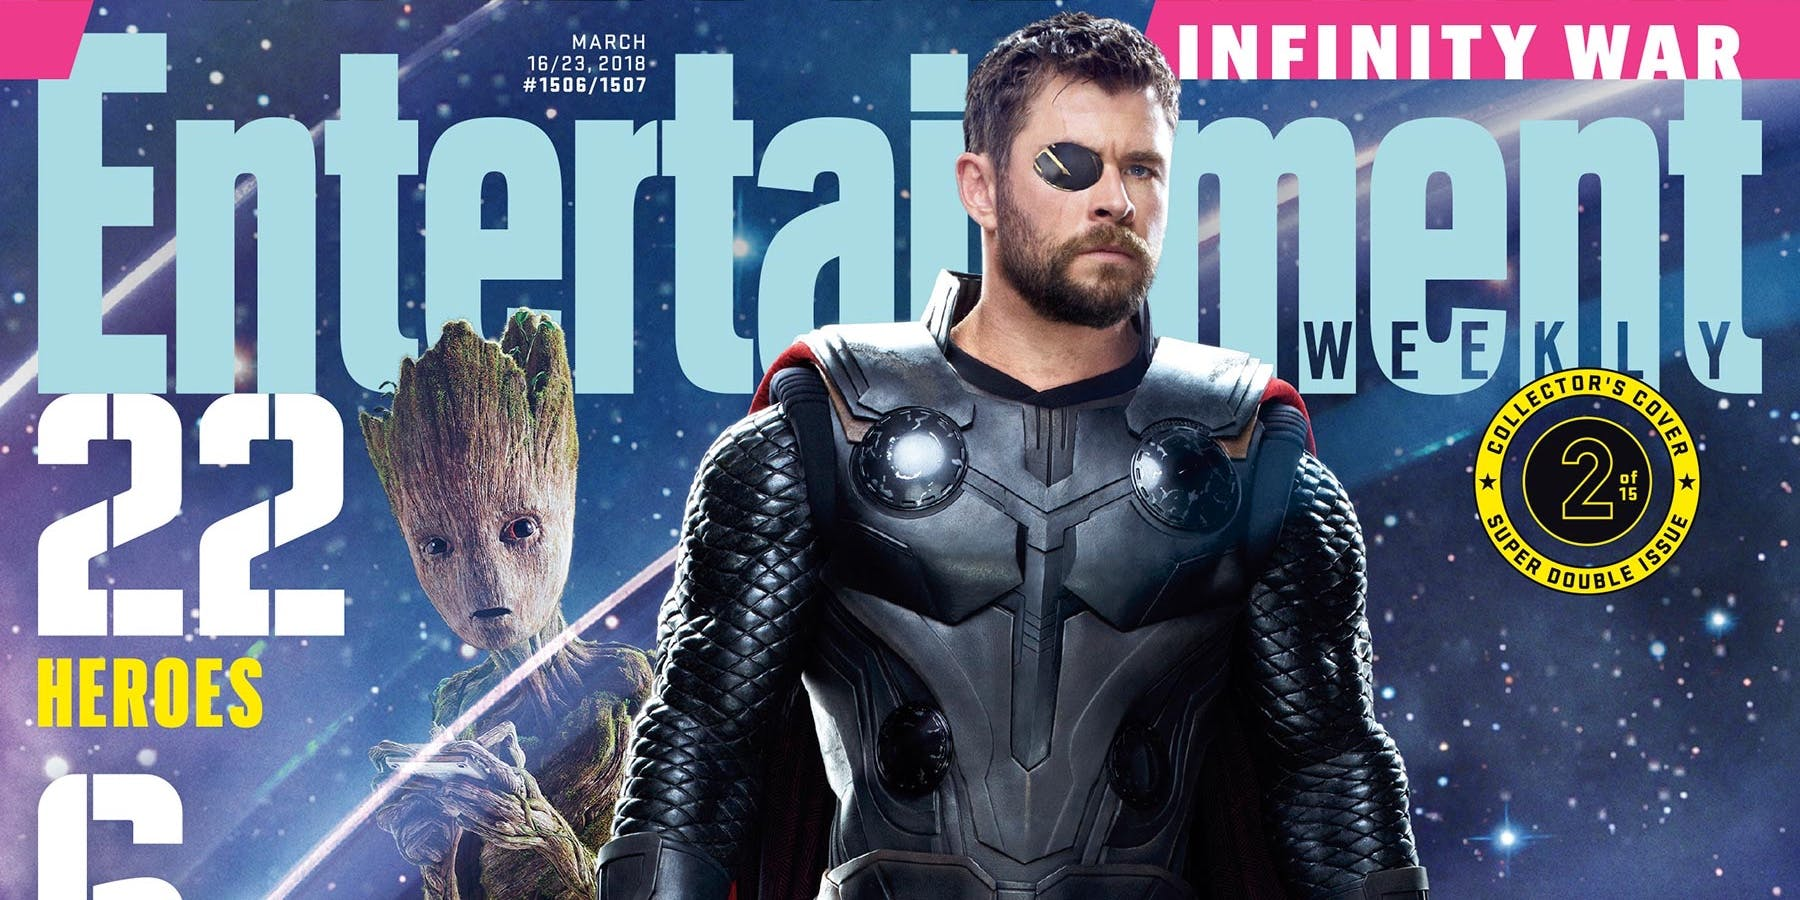 thor will be a pivotal character after avengers: infinity war